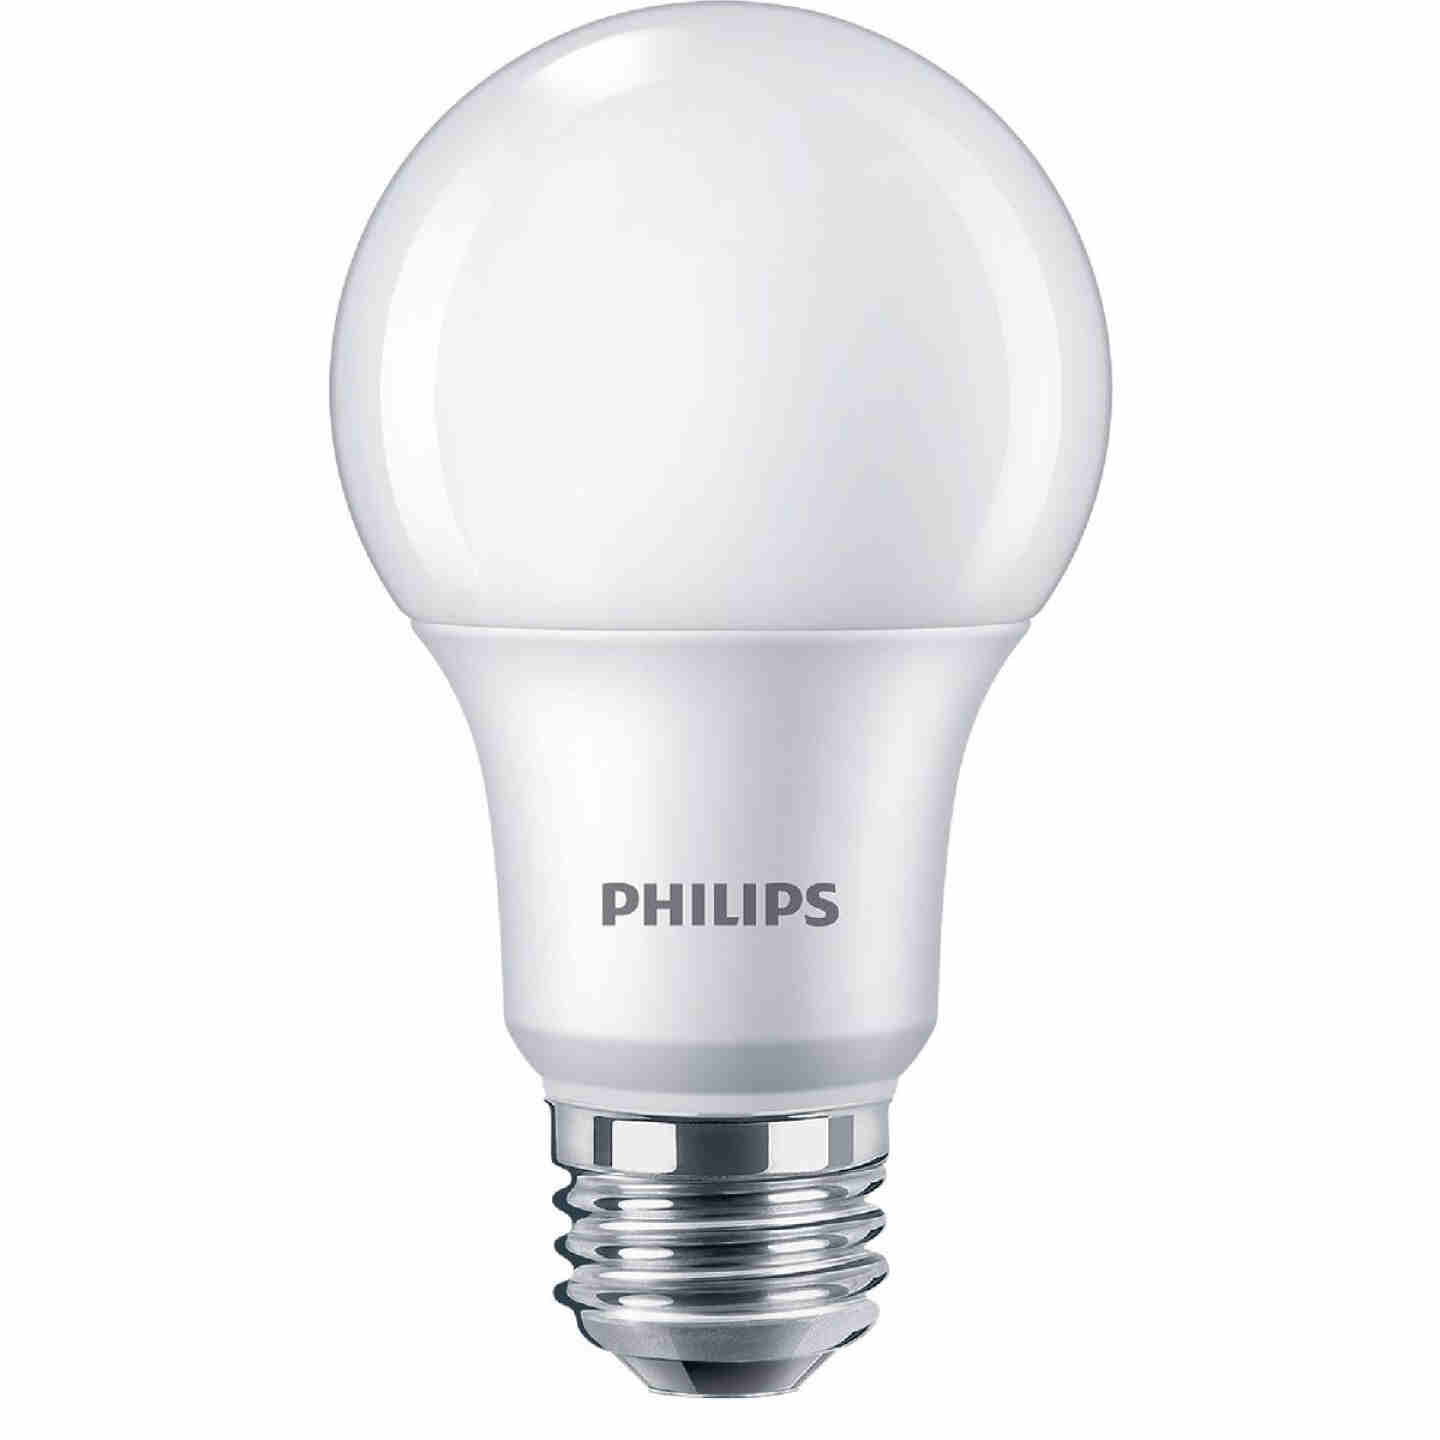 Philips 40W Equivalent Daylight A19 Medium Dimmable LED Light Bulb (4-Pack) Image 2